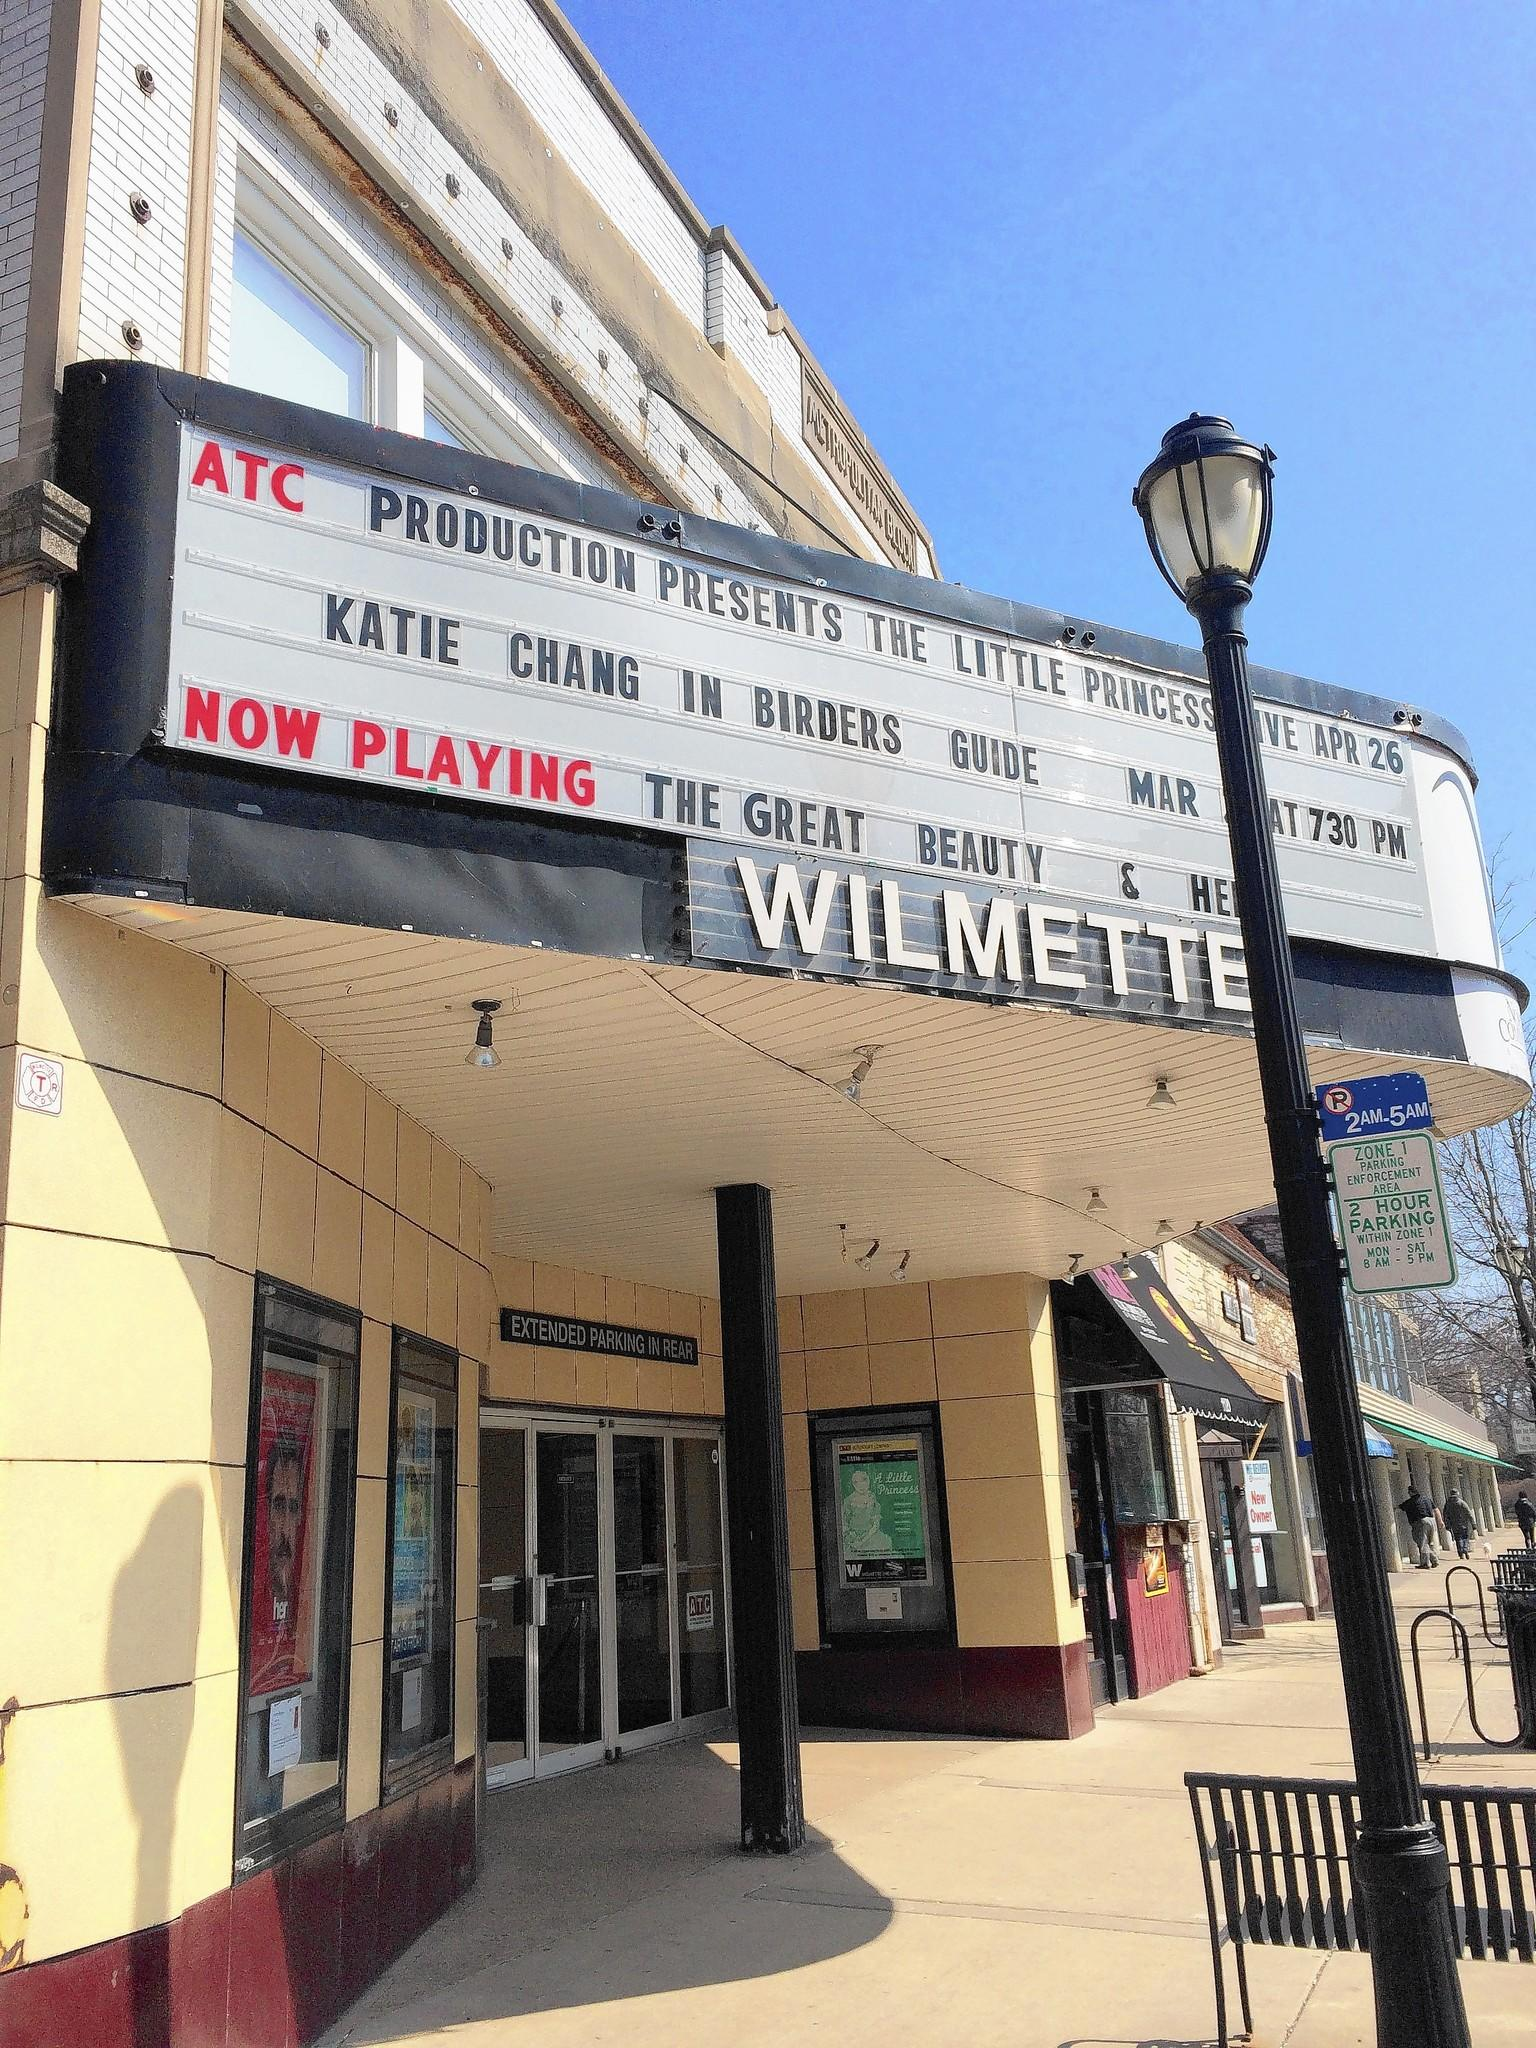 An online Kickstarter fundraiser to save the historic Wilmette Theatre reached its $70,000 goal this week needed to buy a new digital projector and now, officials hope to raise money to renovate the 100-year-old building.